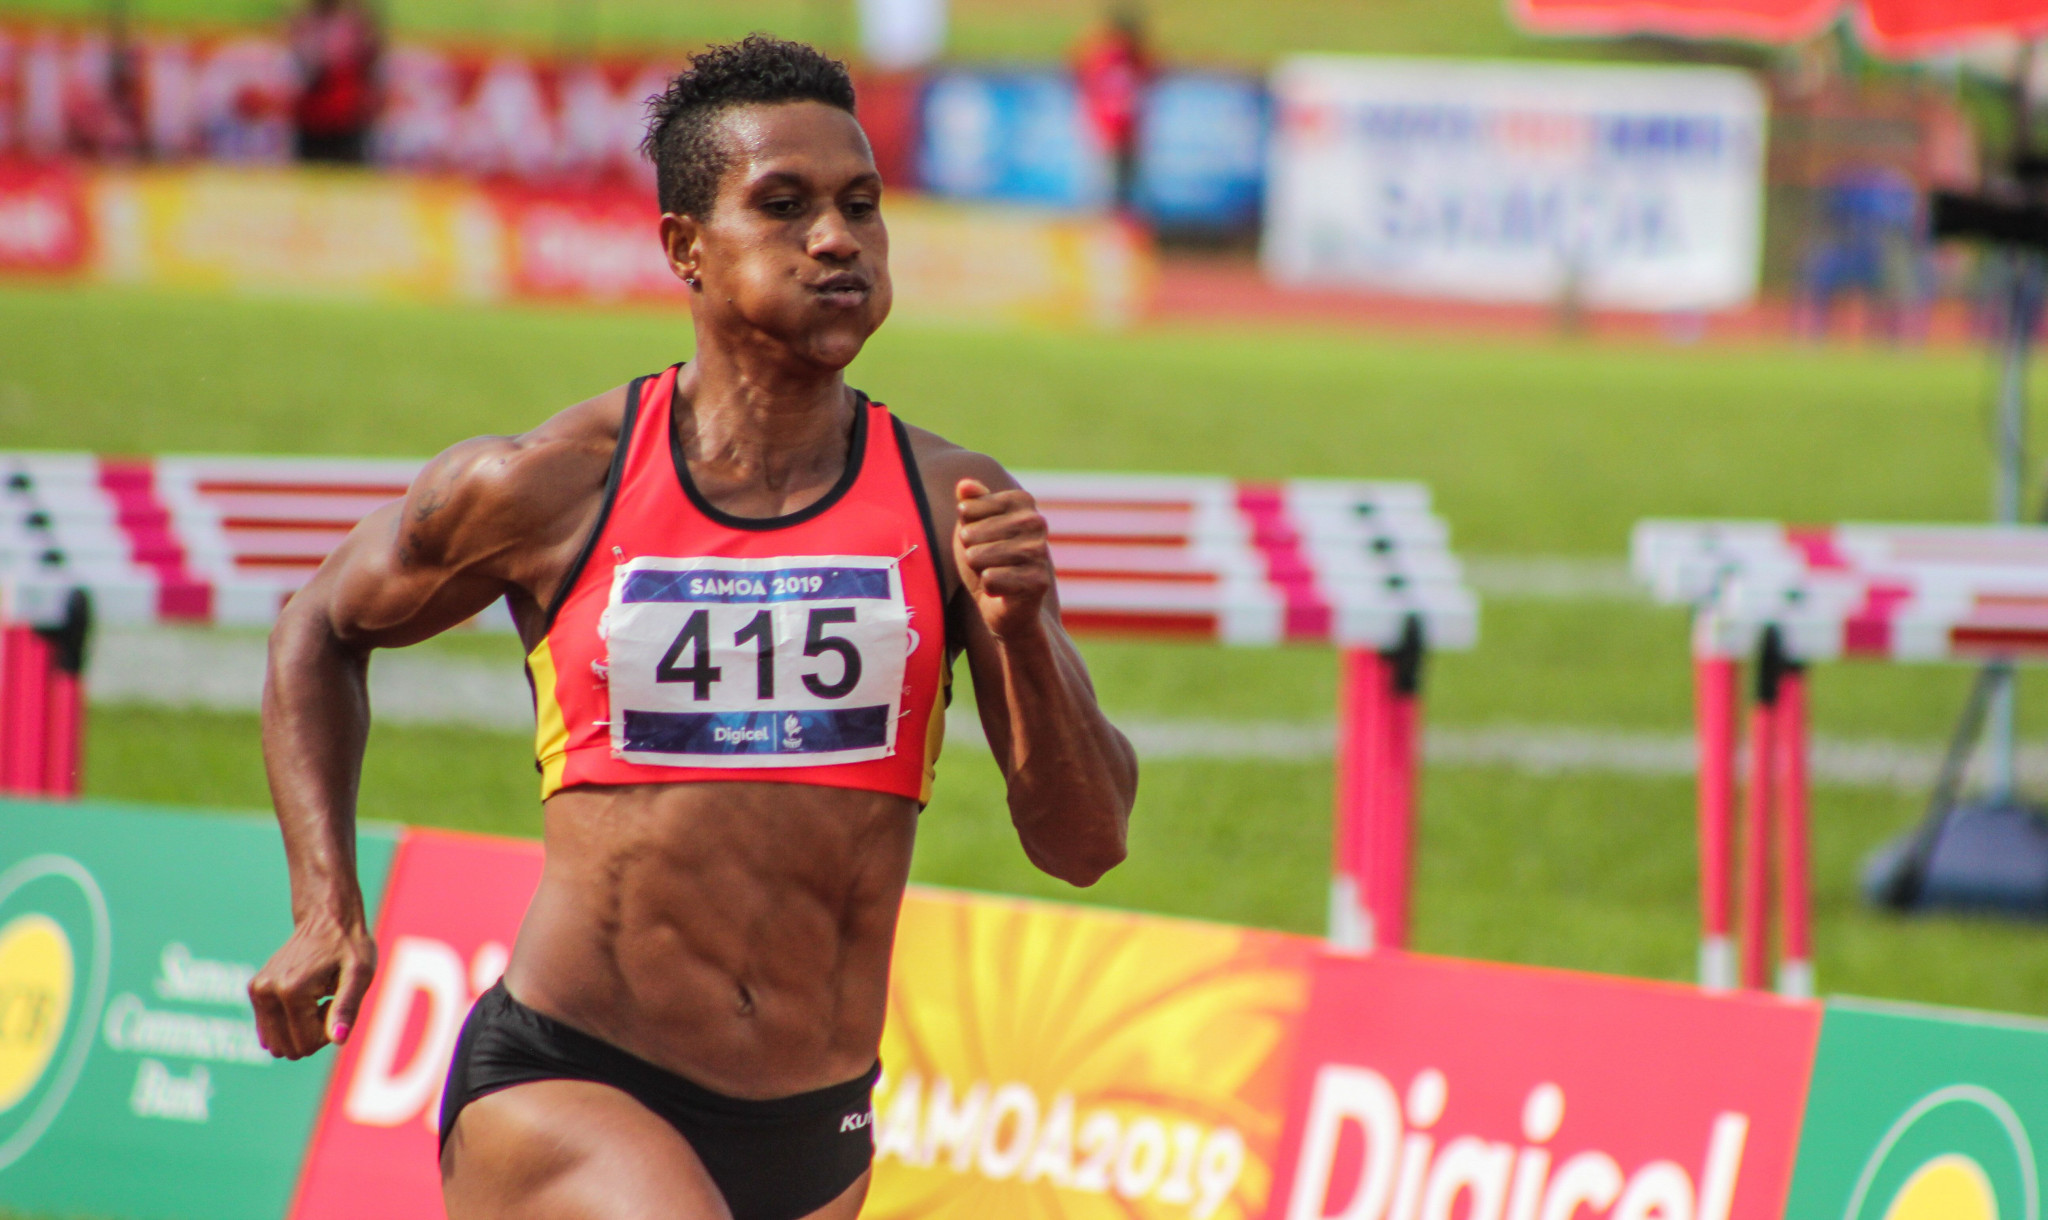 Wisil completes historic Pacific Games sprint triple-triple with 200m gold